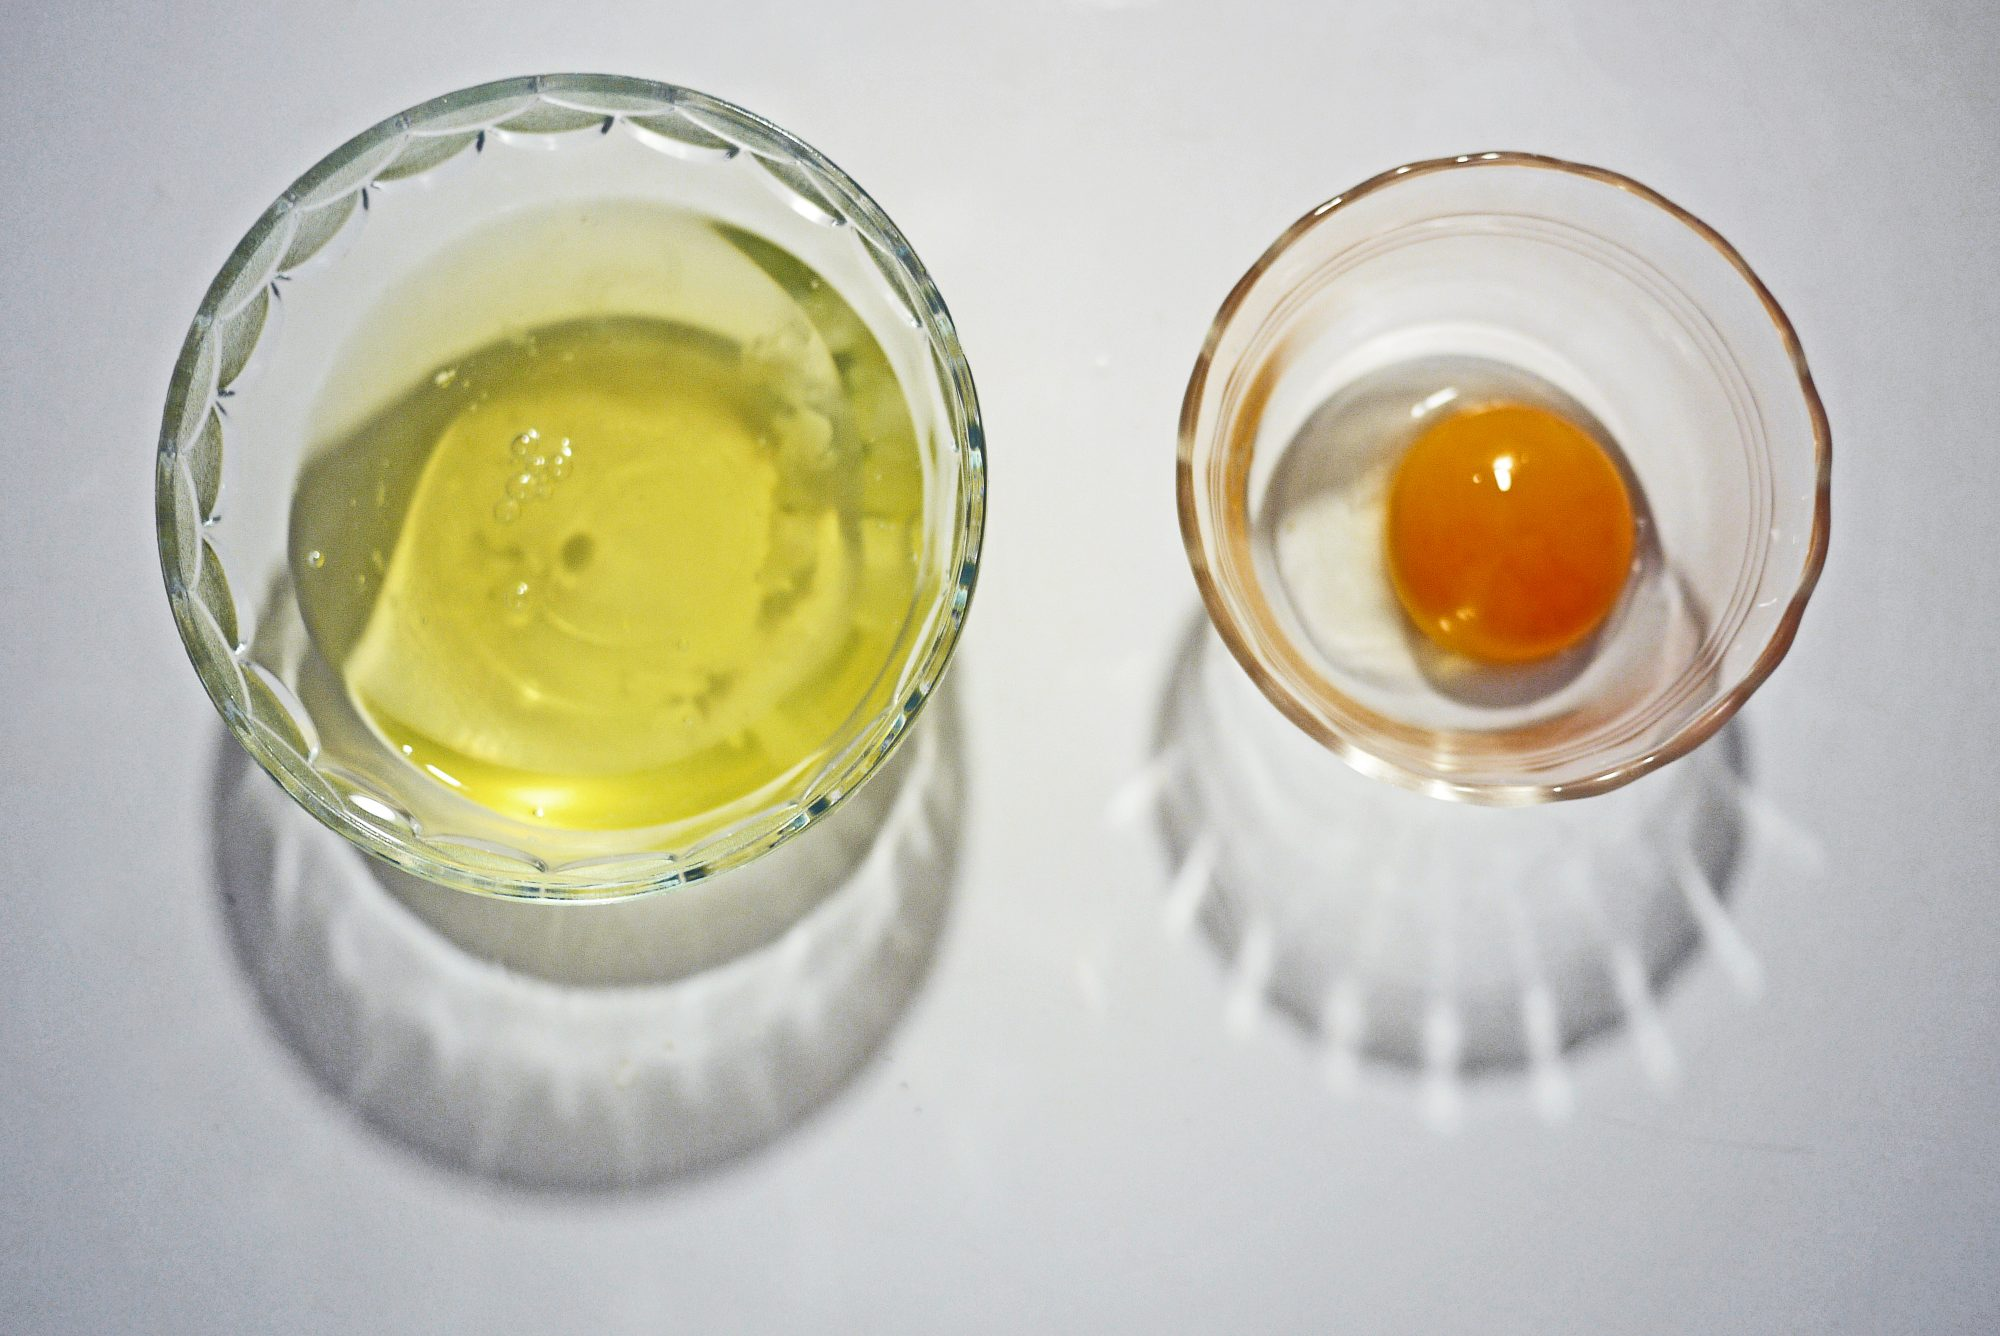 Separated Egg 7/13/20